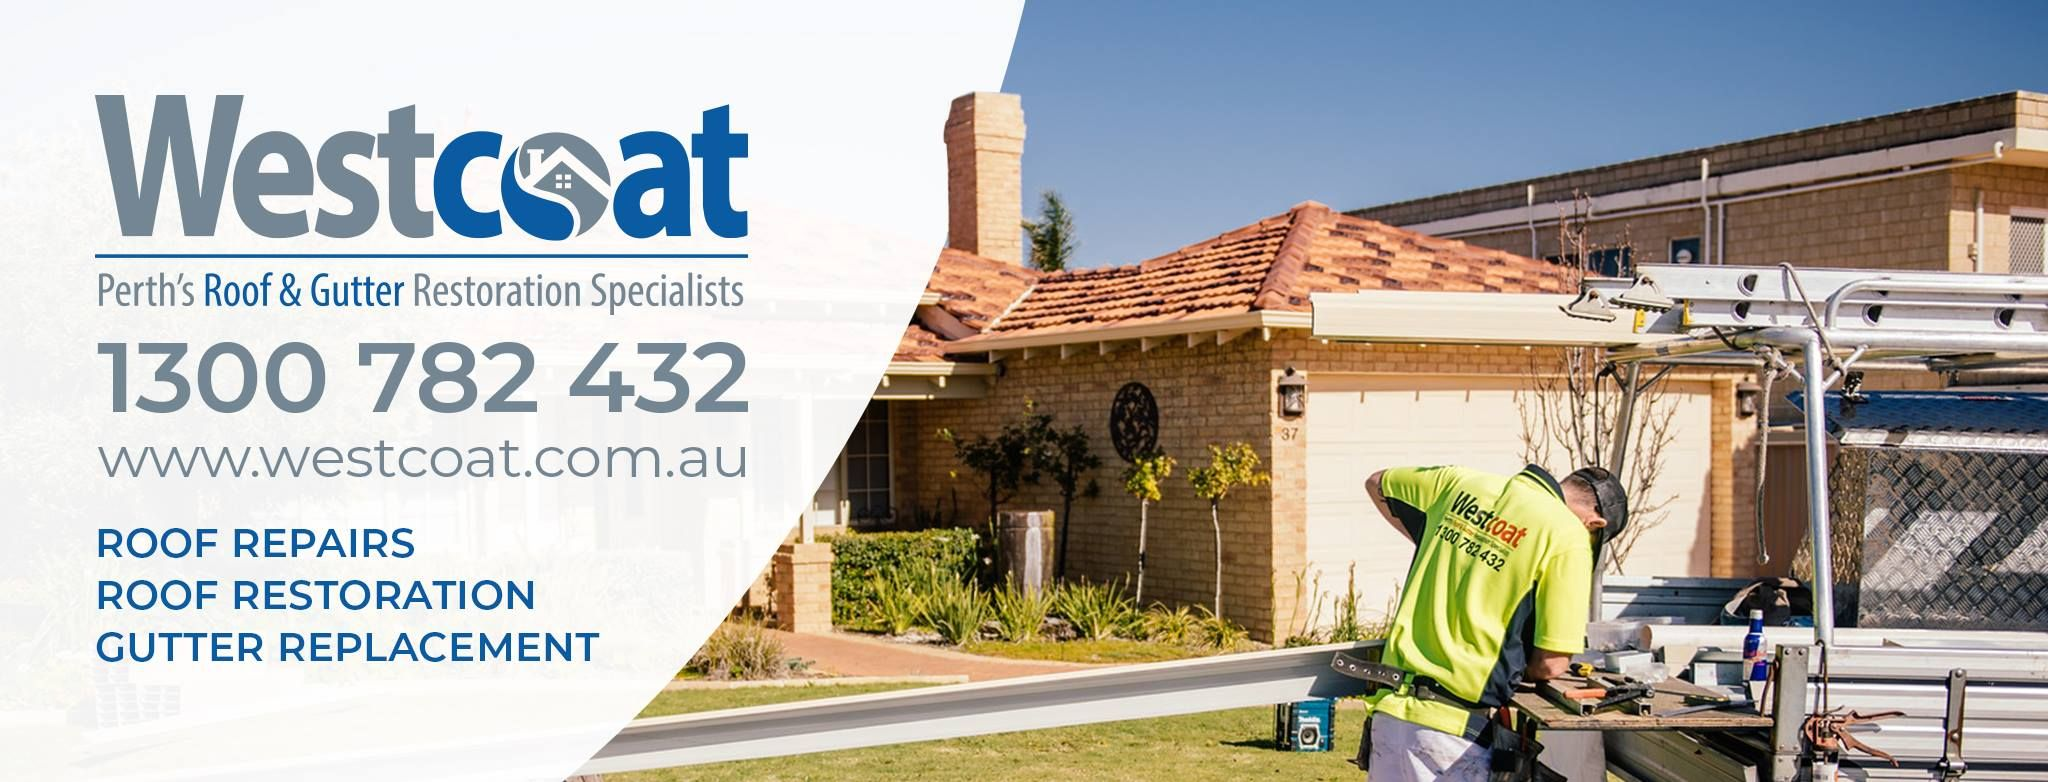 Westcoat Perth S Roof Gutter Restoration With Images Roof Restoration Roof Repair Gutter Repair